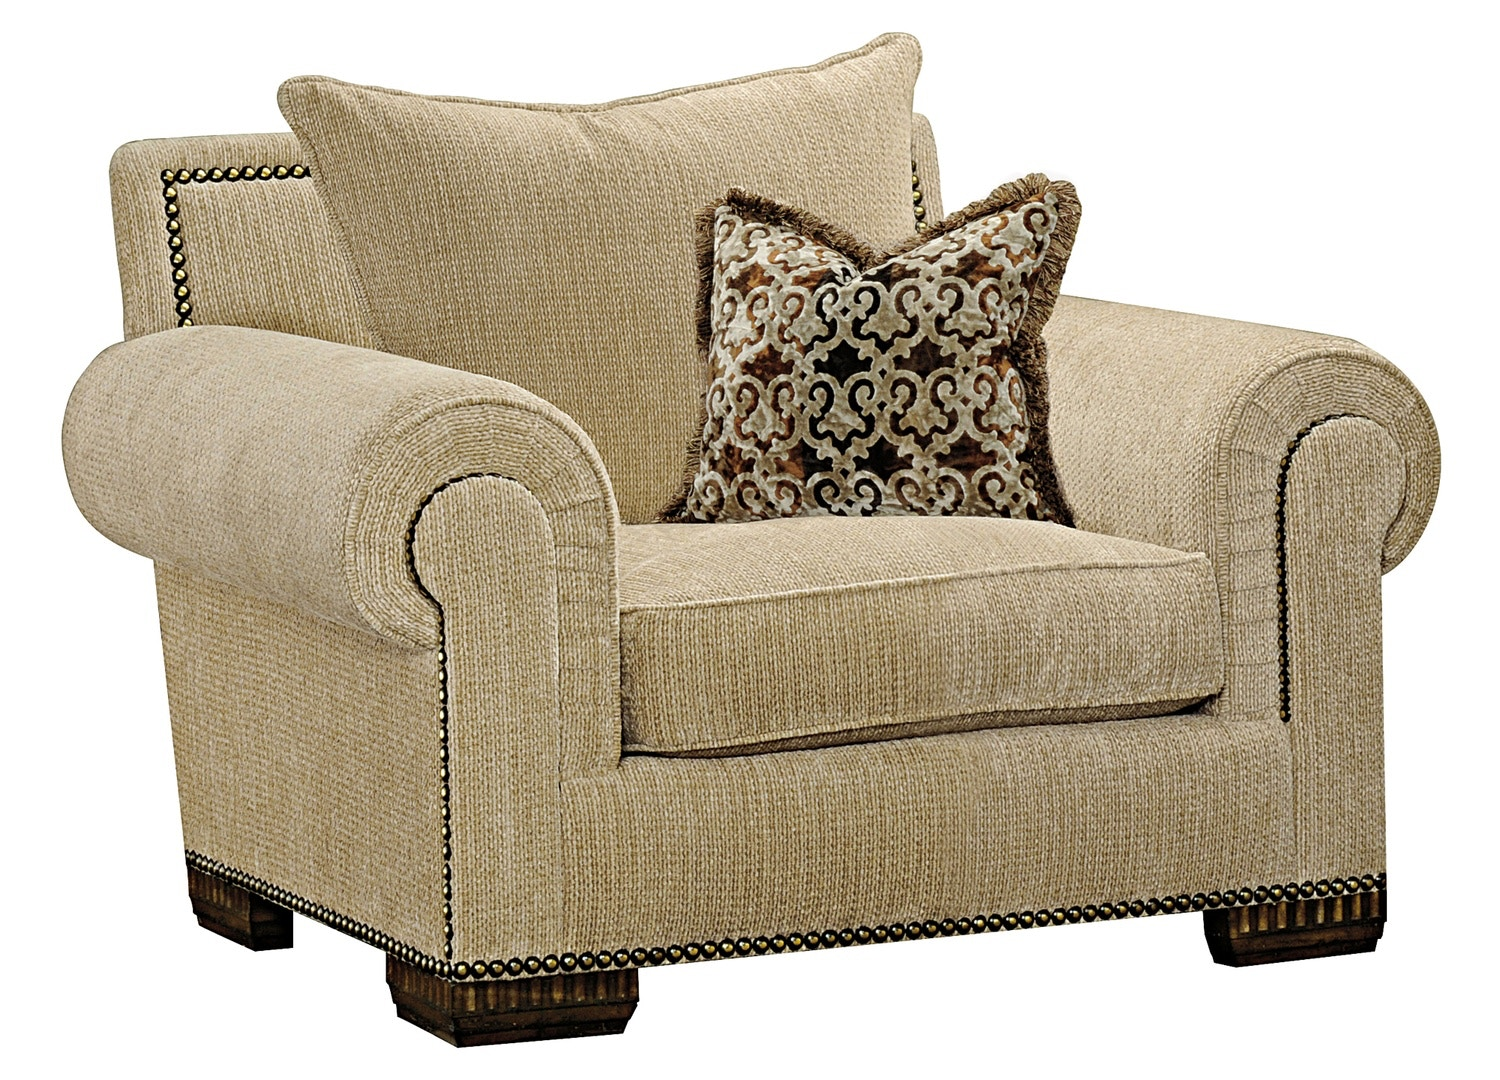 Marge Carson Bentley Lounge Chair BY41L